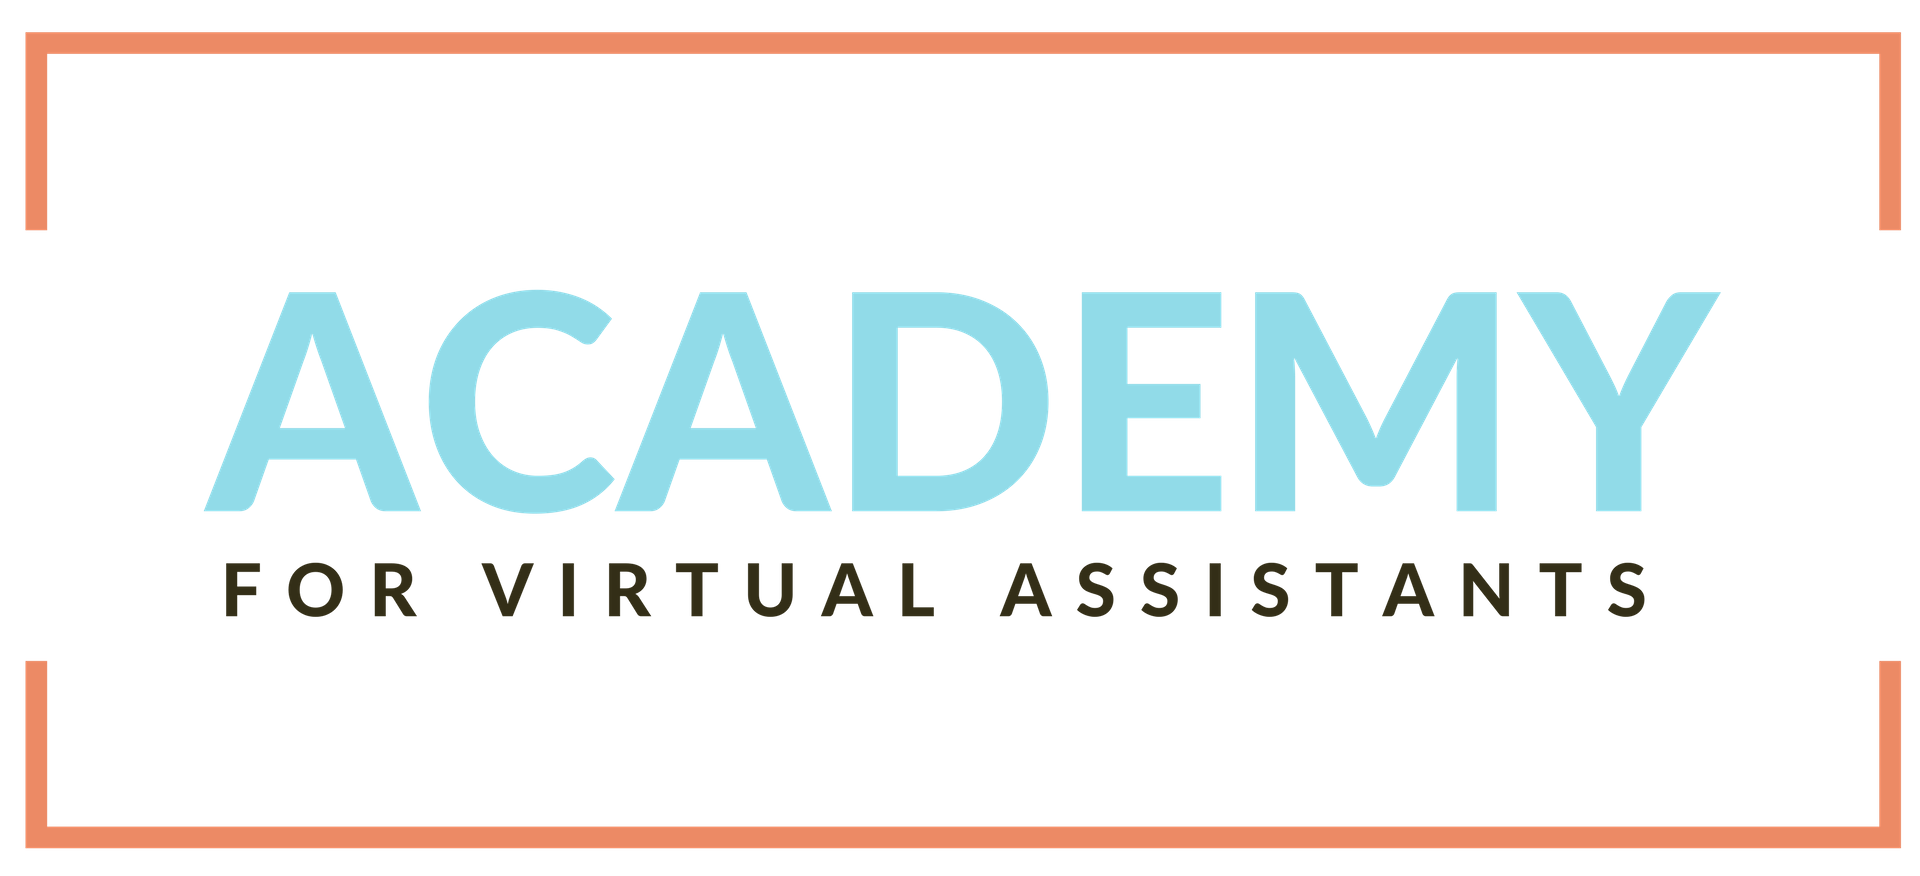 The business academy for Virtual Assistants